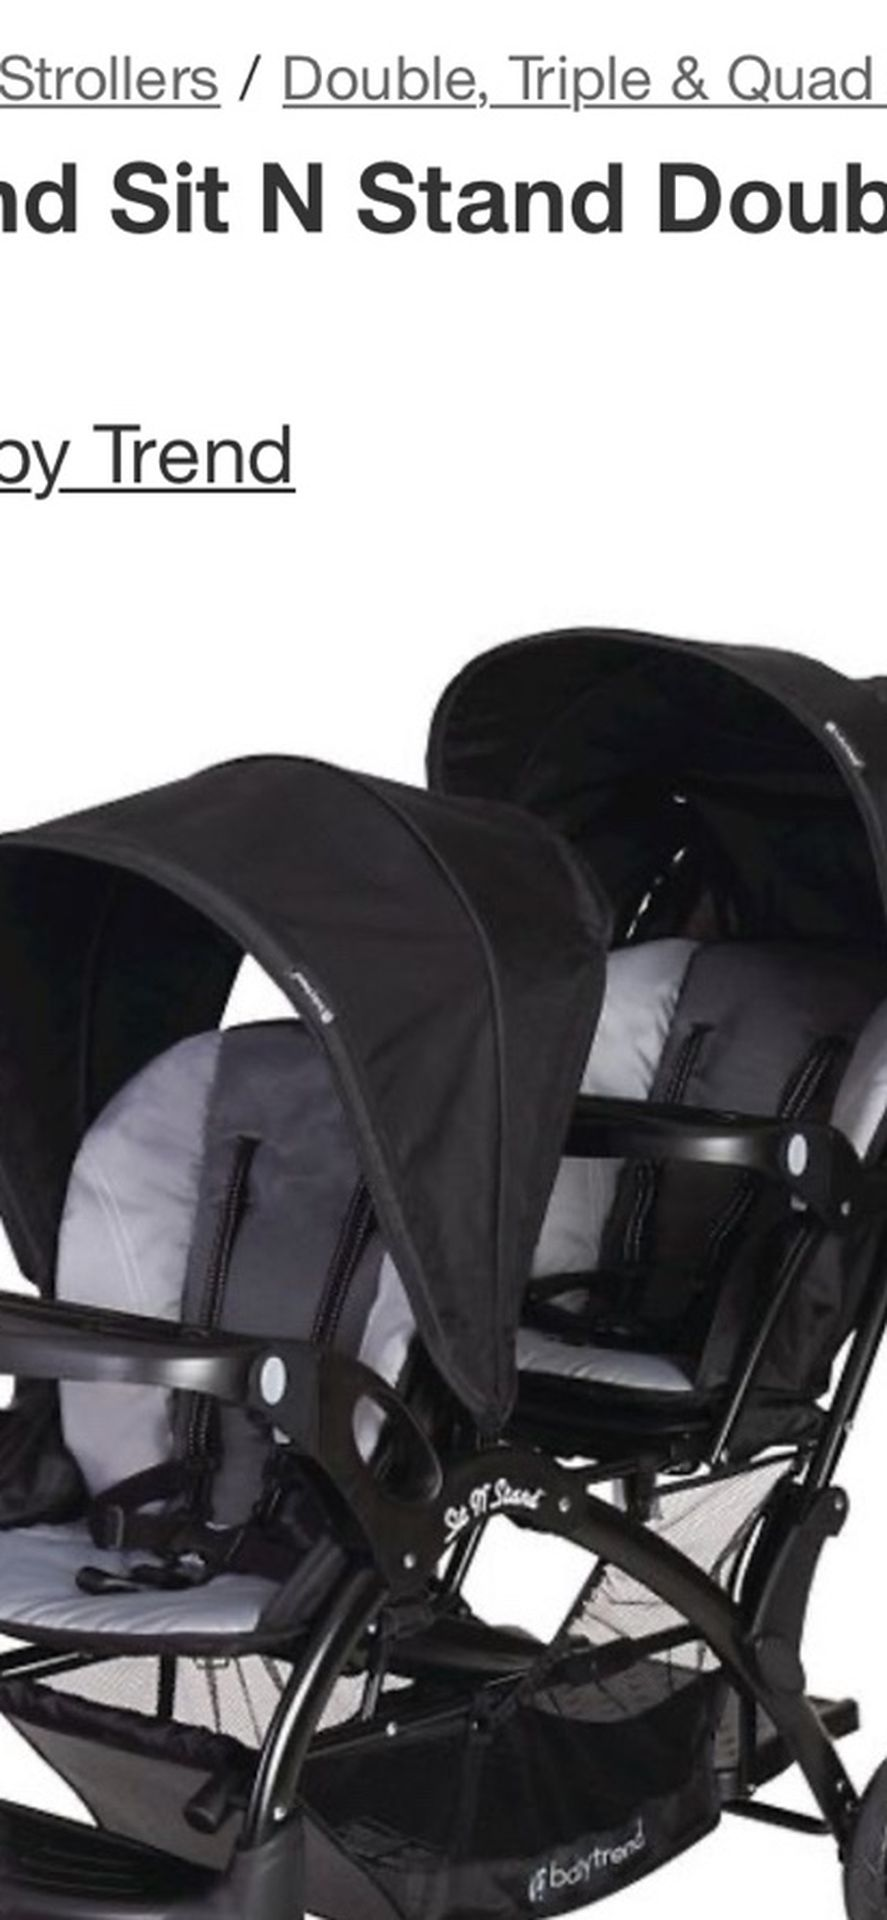 Same Exact Stroller I Have For Sell .